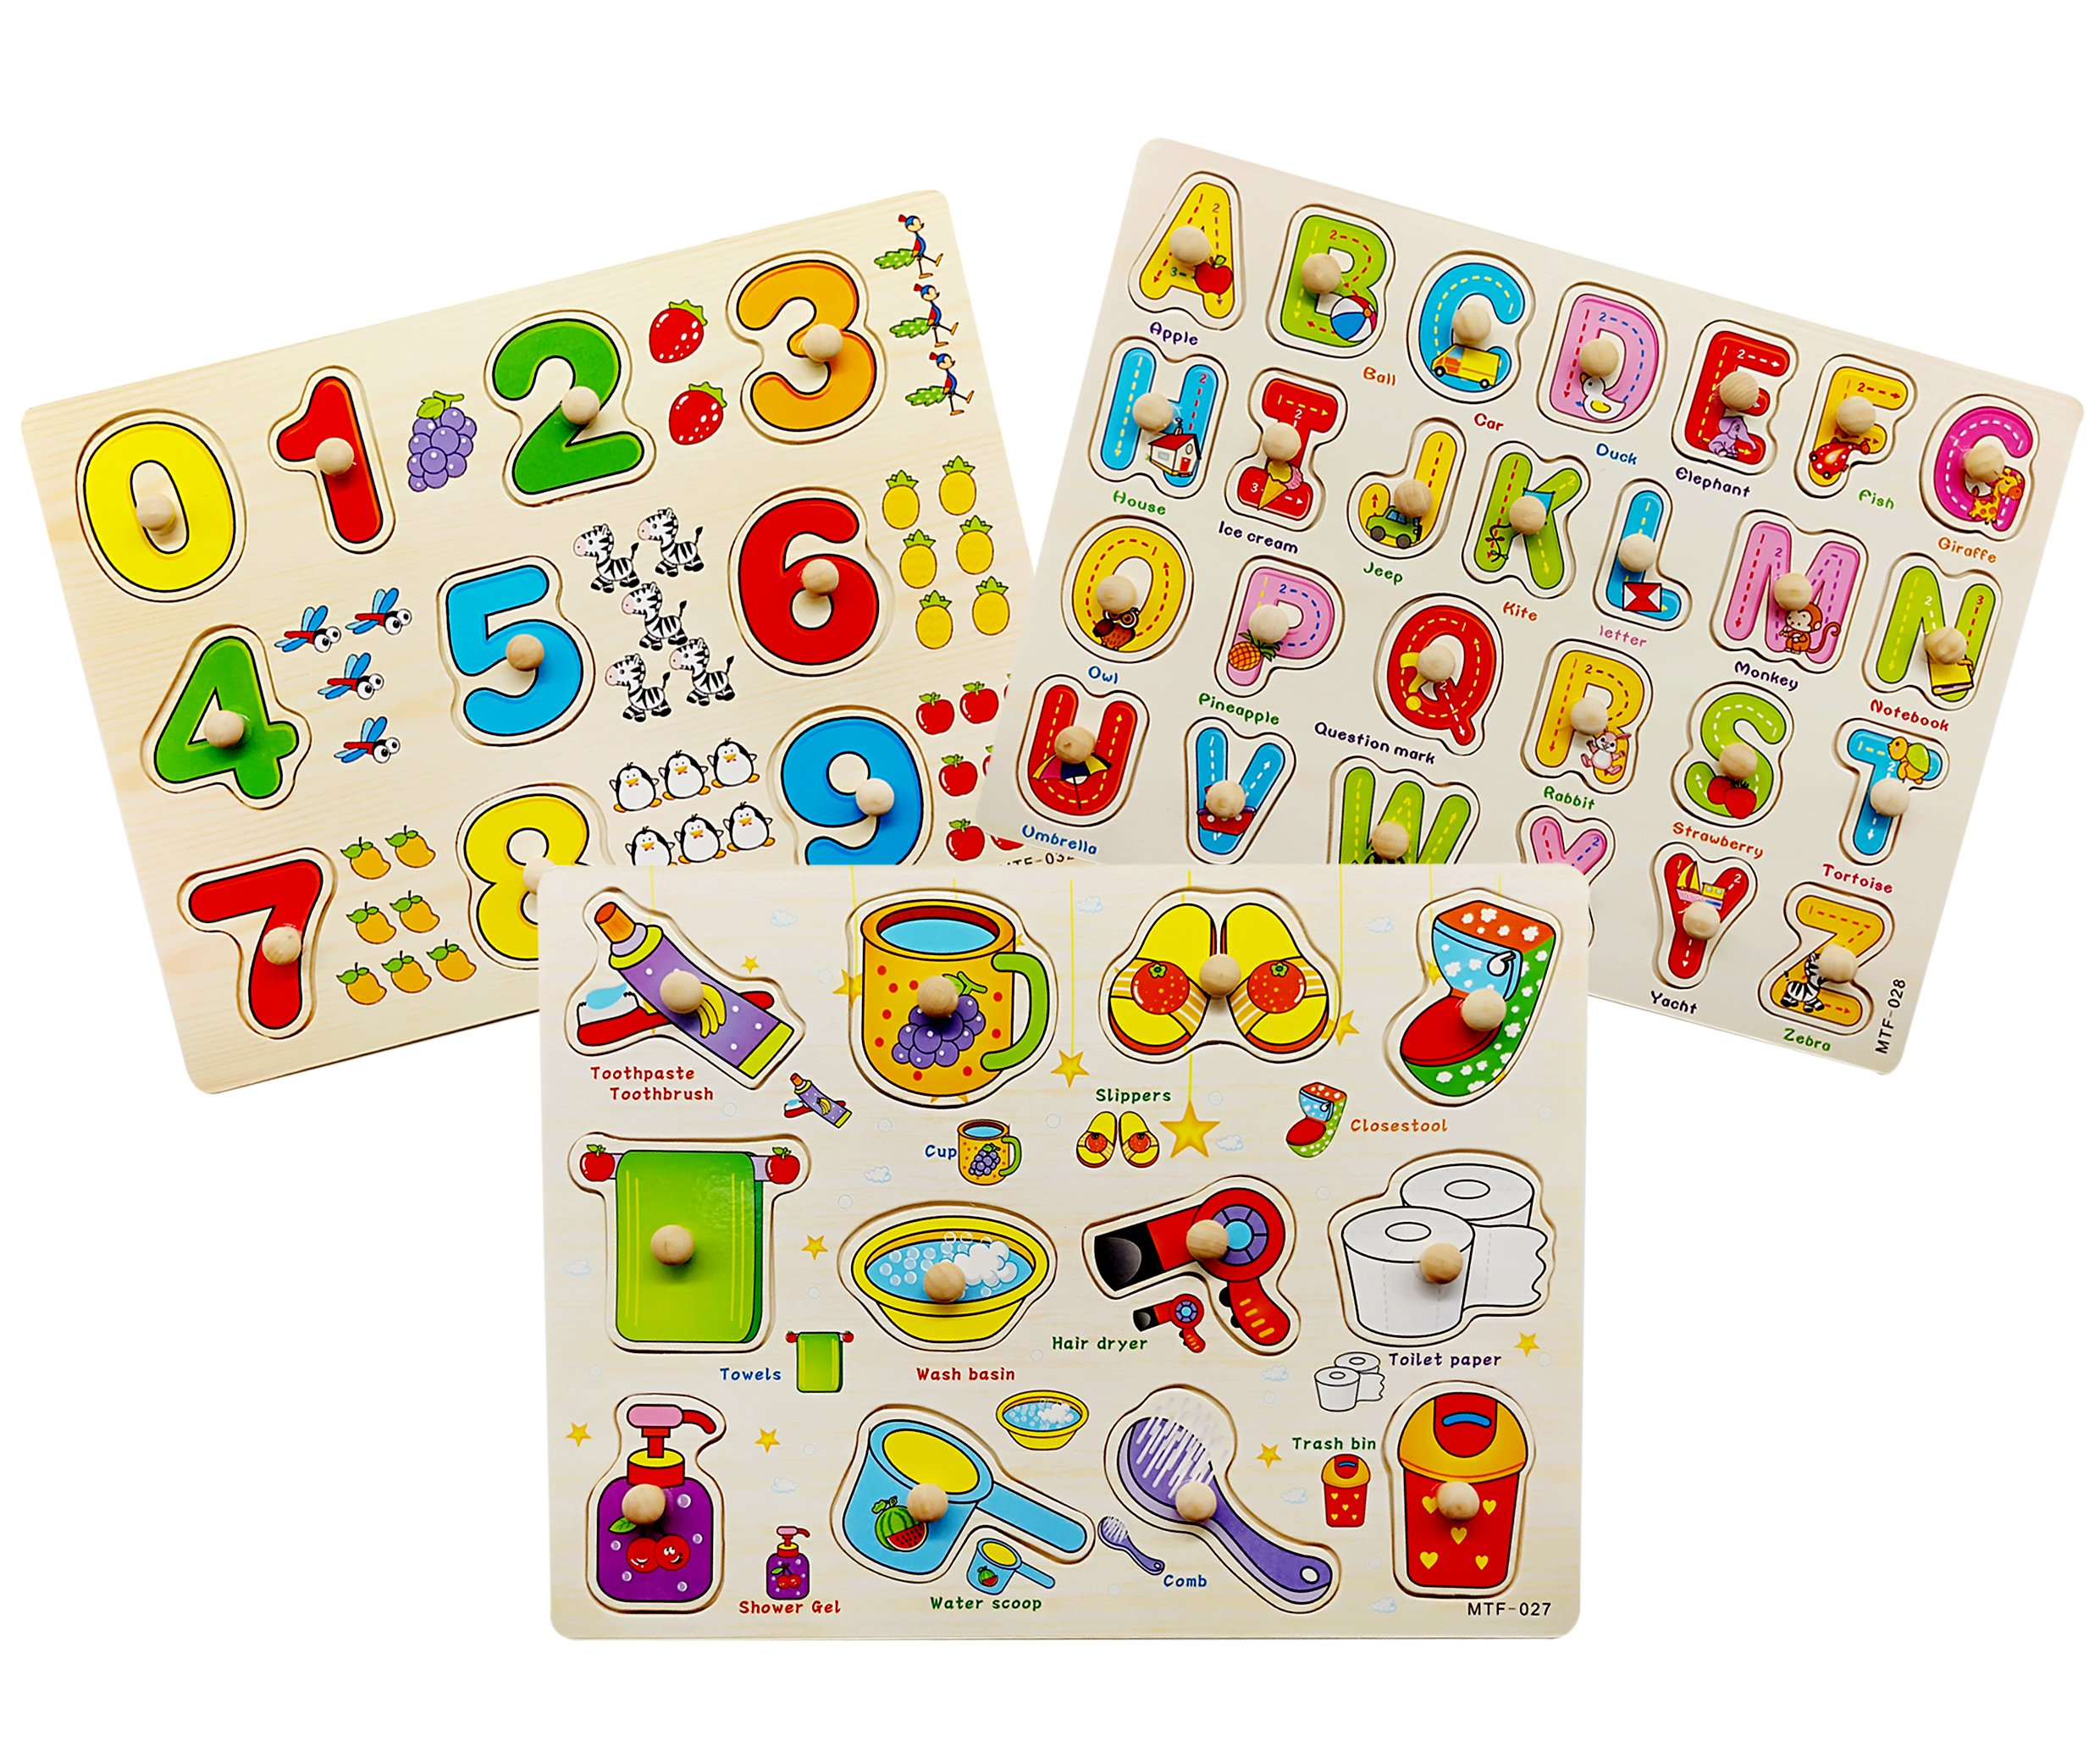 Toddler Puzzles Wooden Peg Puzzles for Toddlers 2 3 4 5 years old (Set of 3) - Numbers, Alphabet and Objects Puzzle by Wallxin by Wallxin (Image #1)